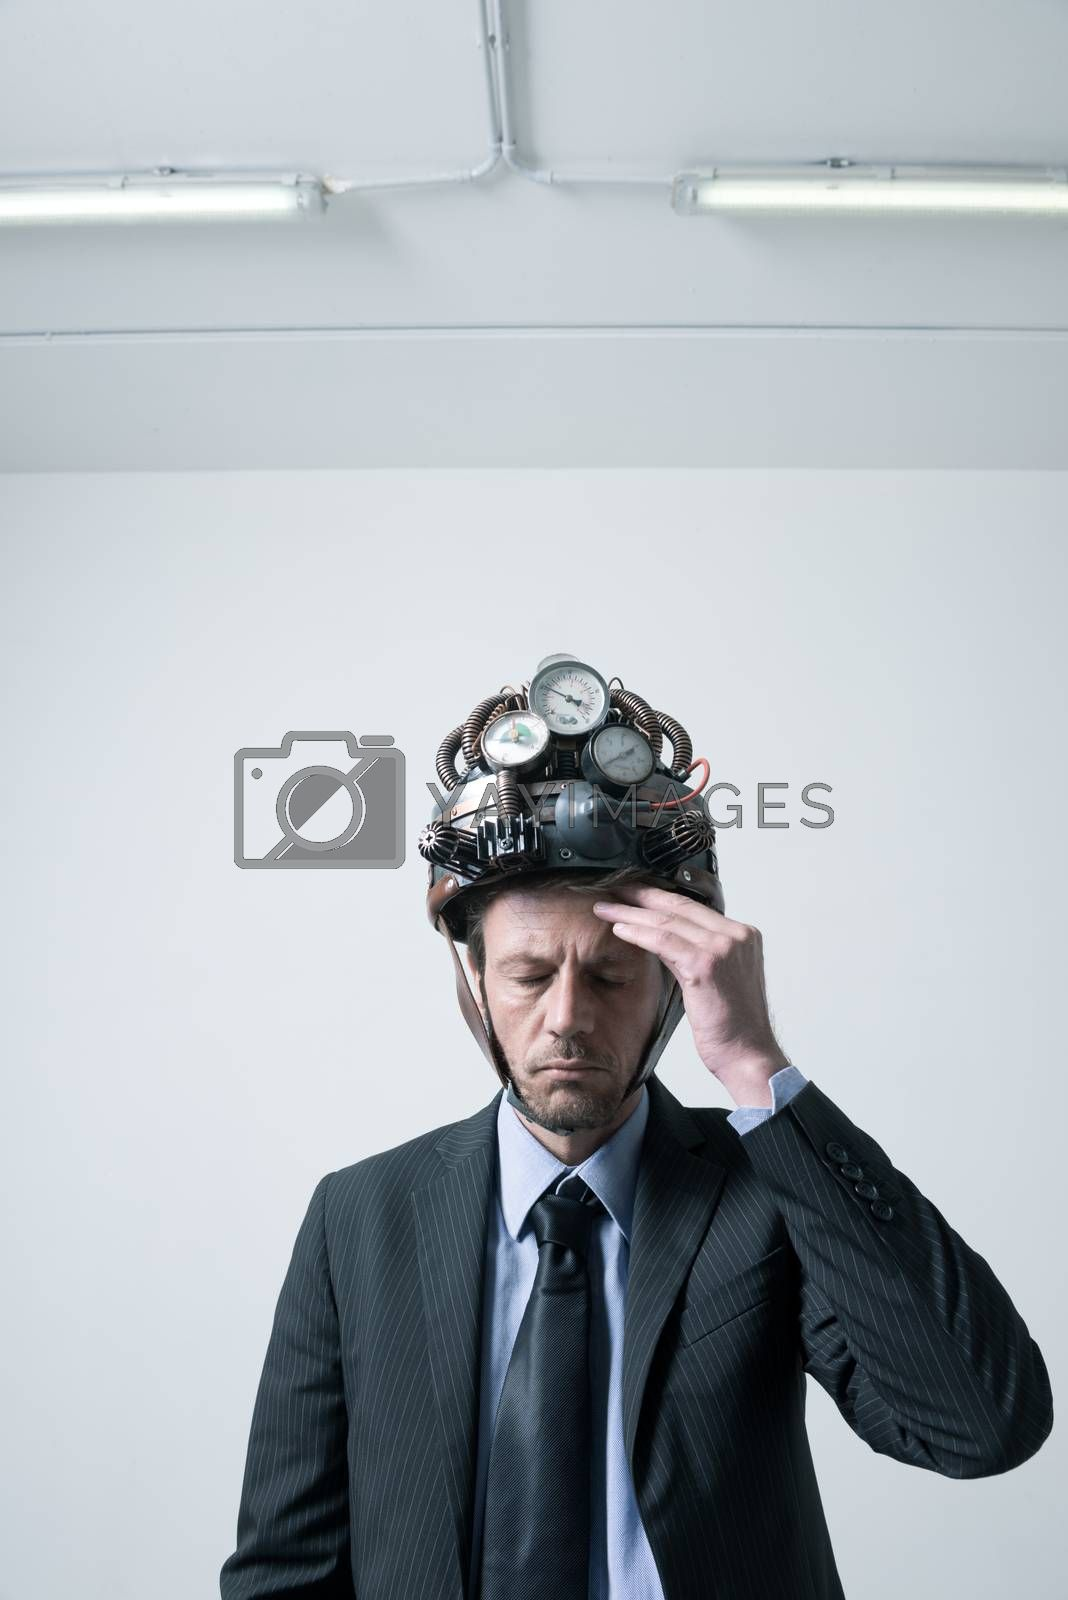 Tired pensive businessman touching his forehead weaaring futuristic helmet with gauges.